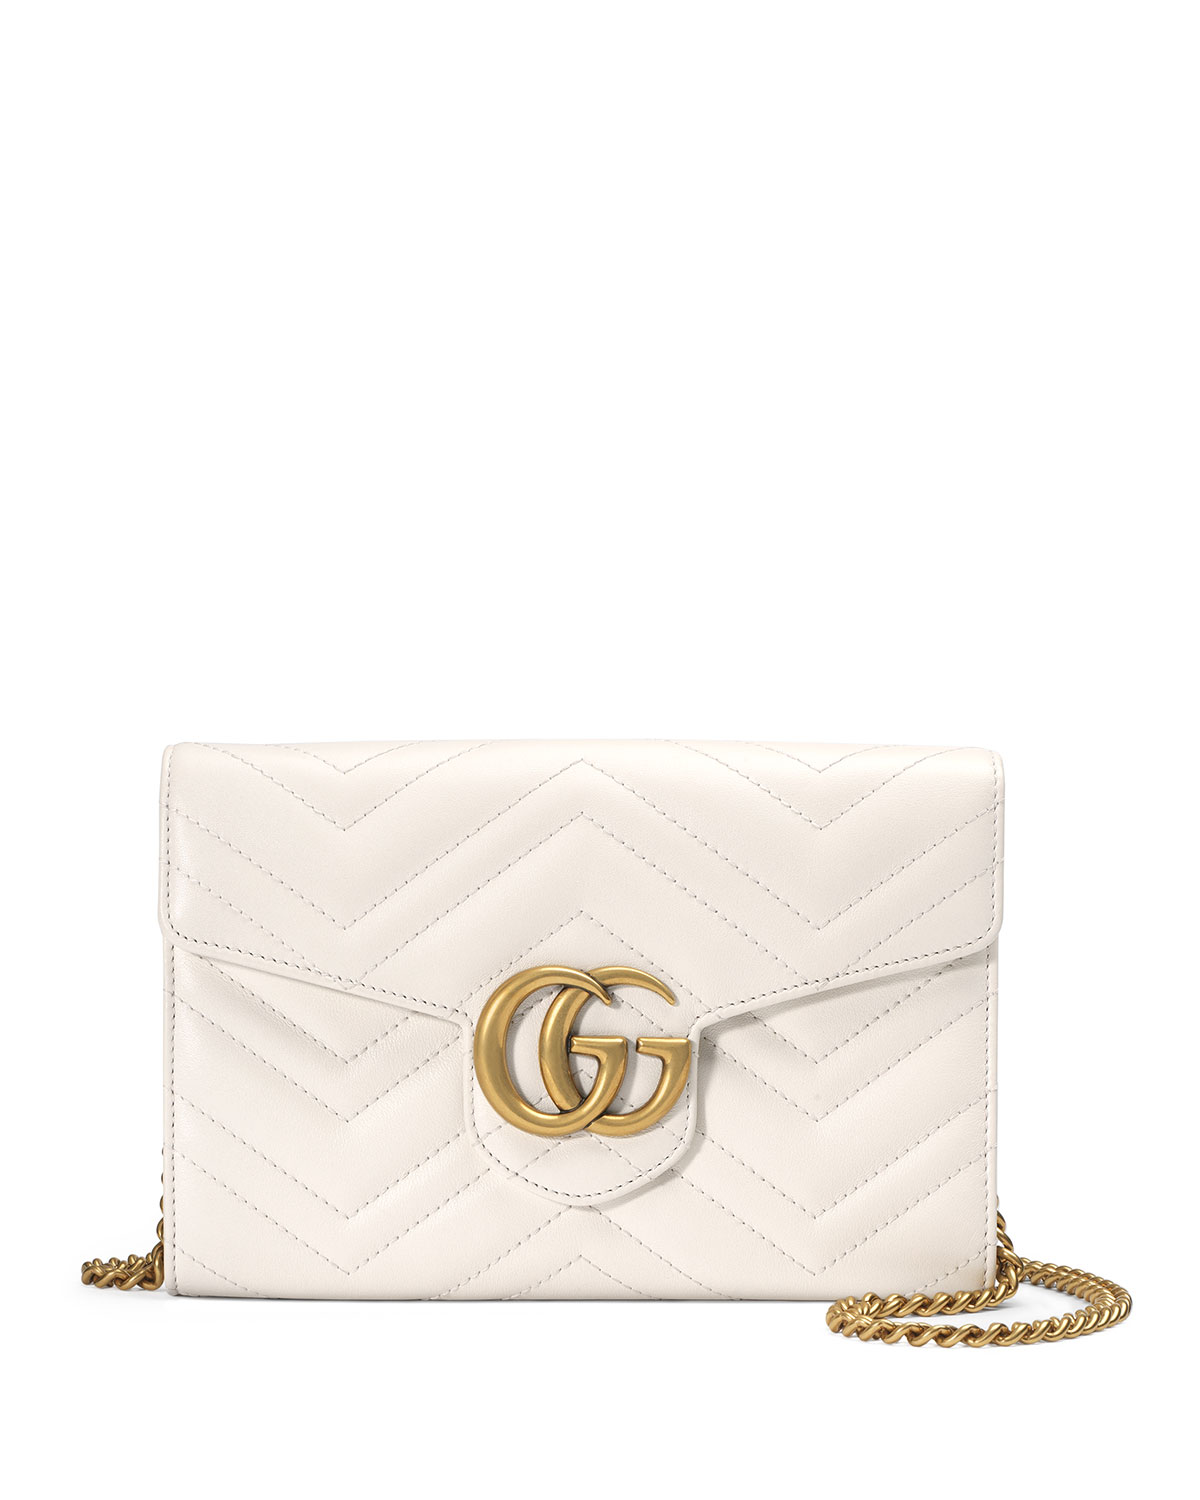 1110660be2e Gucci GG Marmont Mini Matelassé Chain Bag